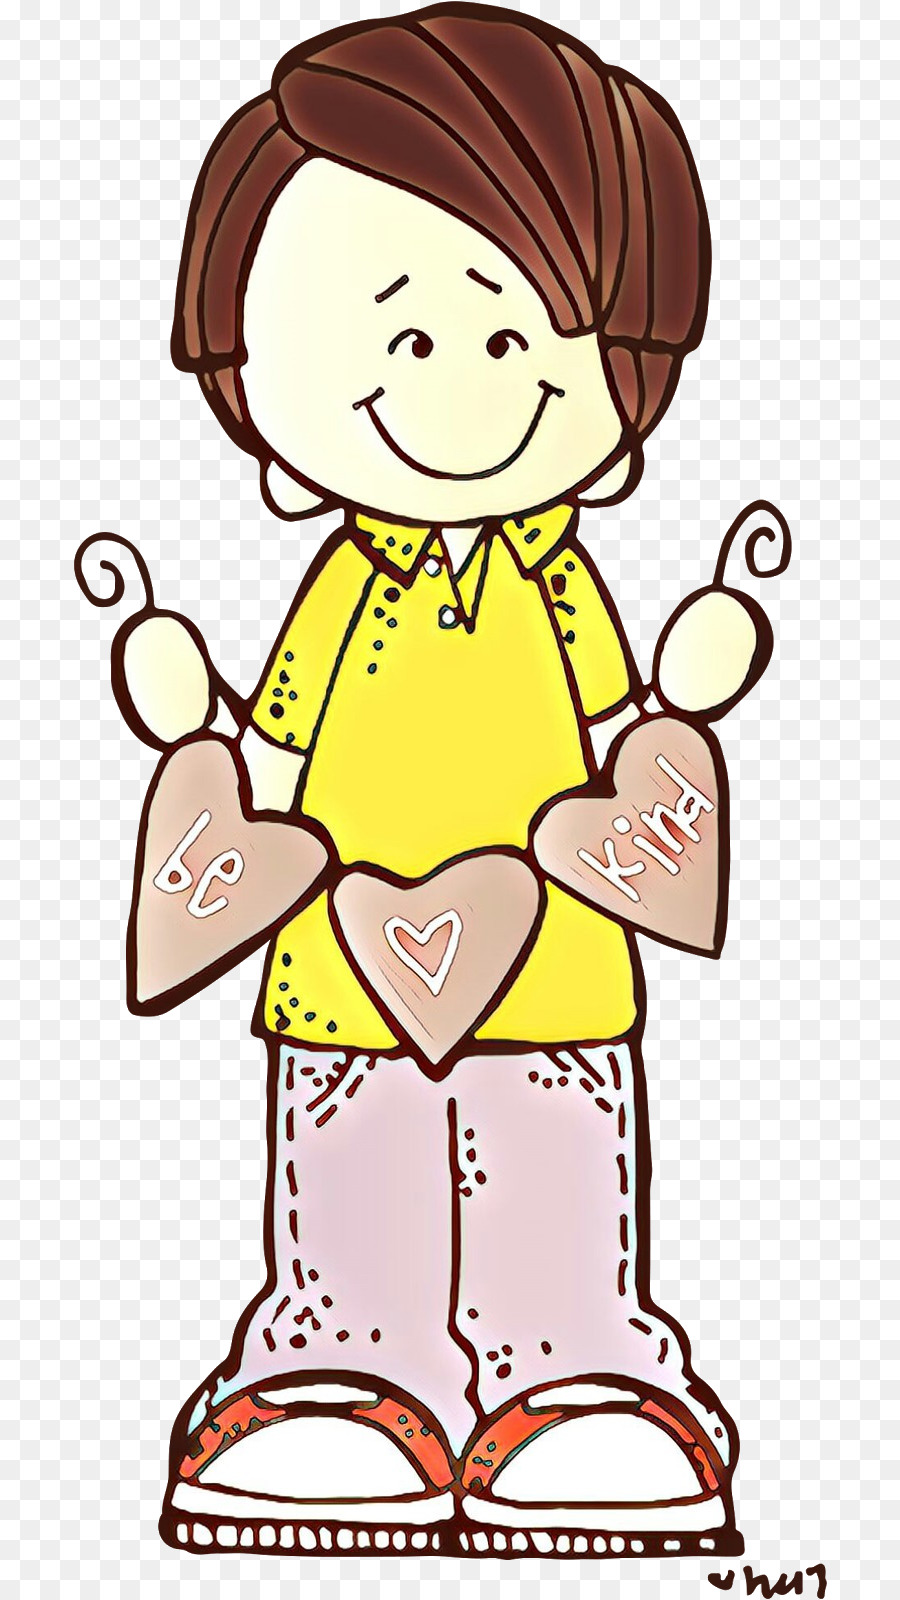 Kindness Cartoon png download.